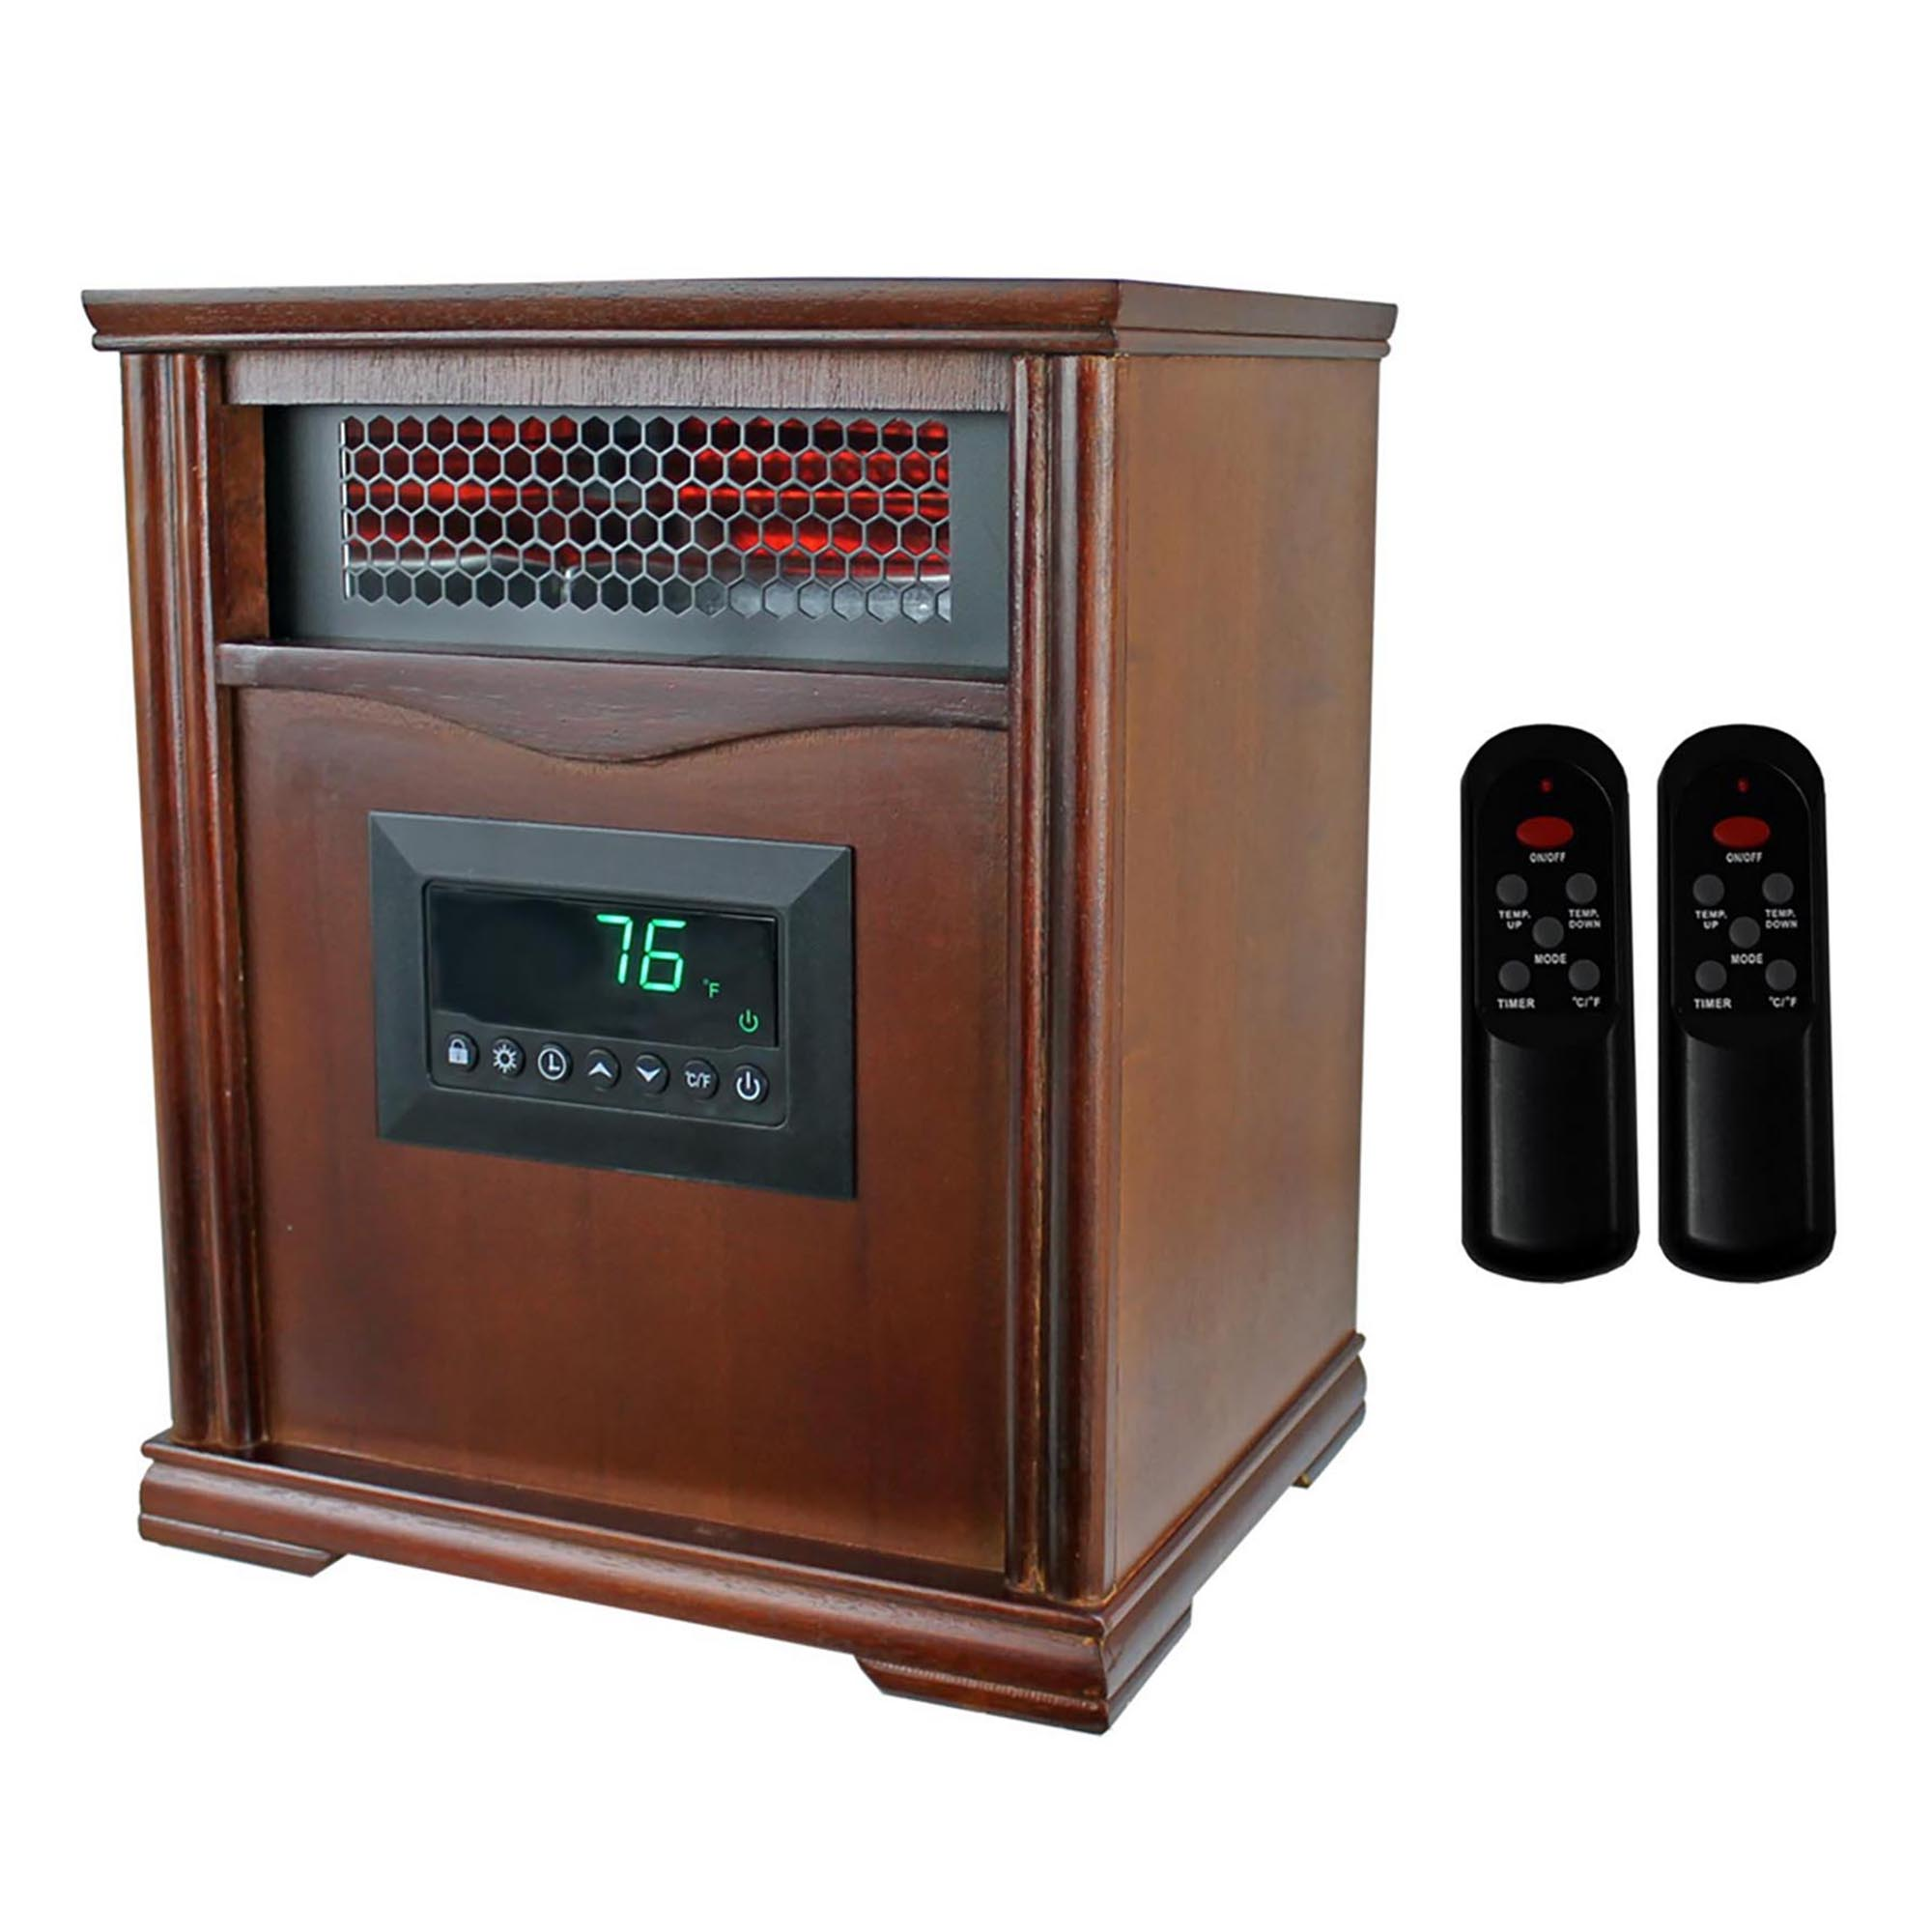 LifeSmart LifePro Dark Oak 1500 Watt Infrared Electric Portable Space Heater